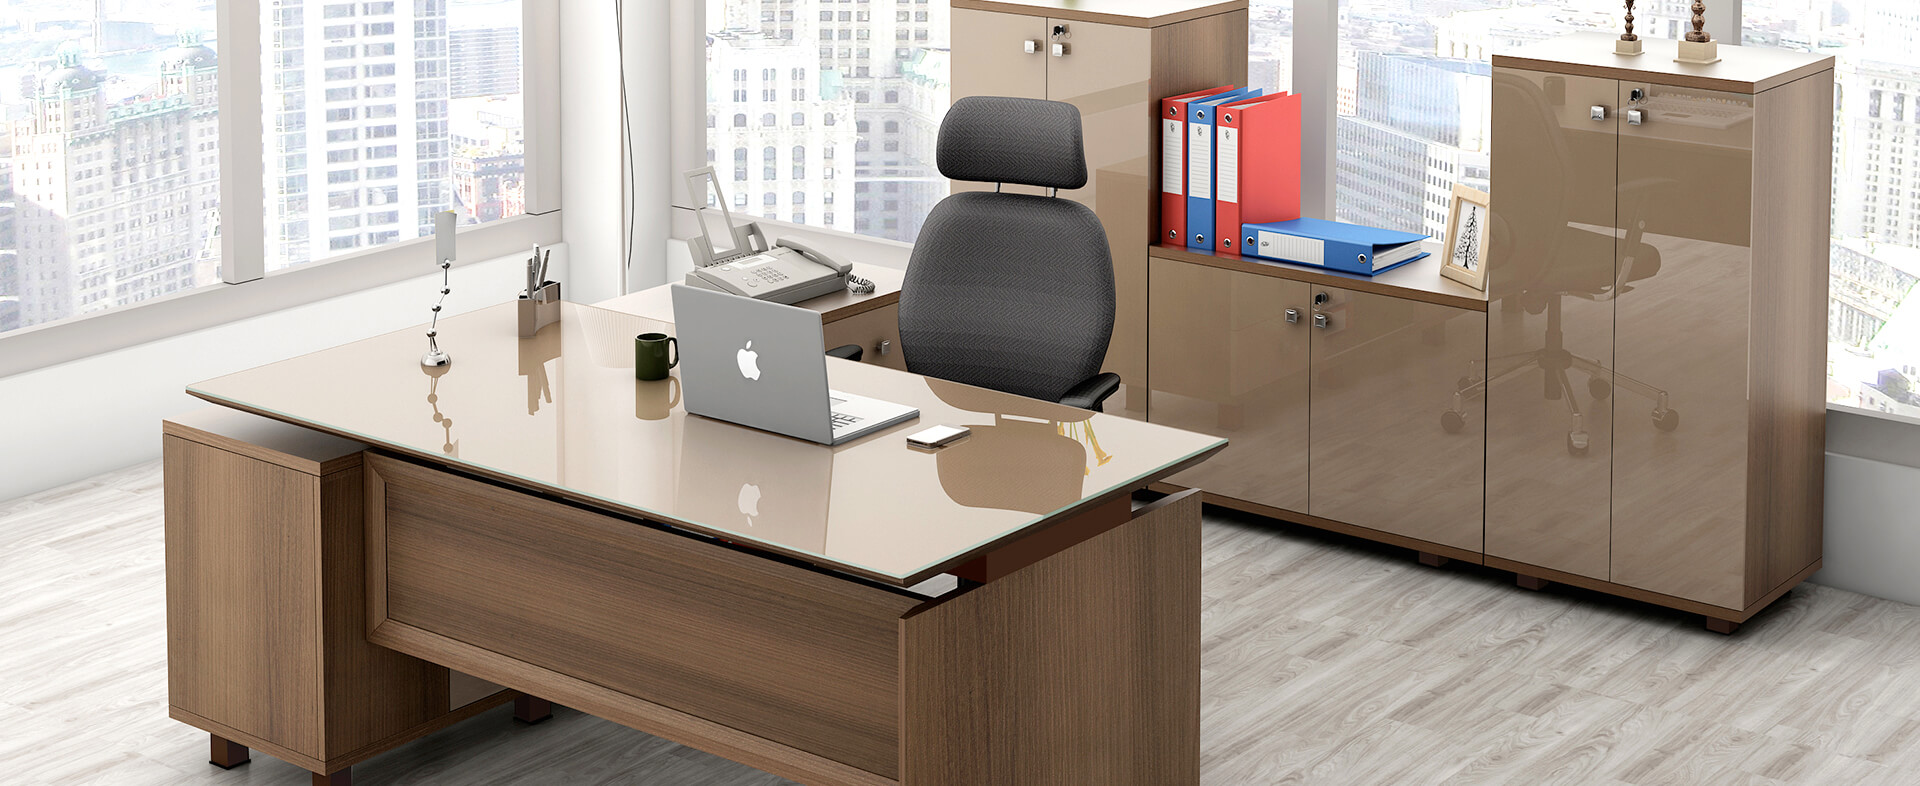 revolving chair manufacturer in nagpur baby bouncy asda modular kitchens wardrobes living room bedroom interior designers sophistication at work spacewood office furniture